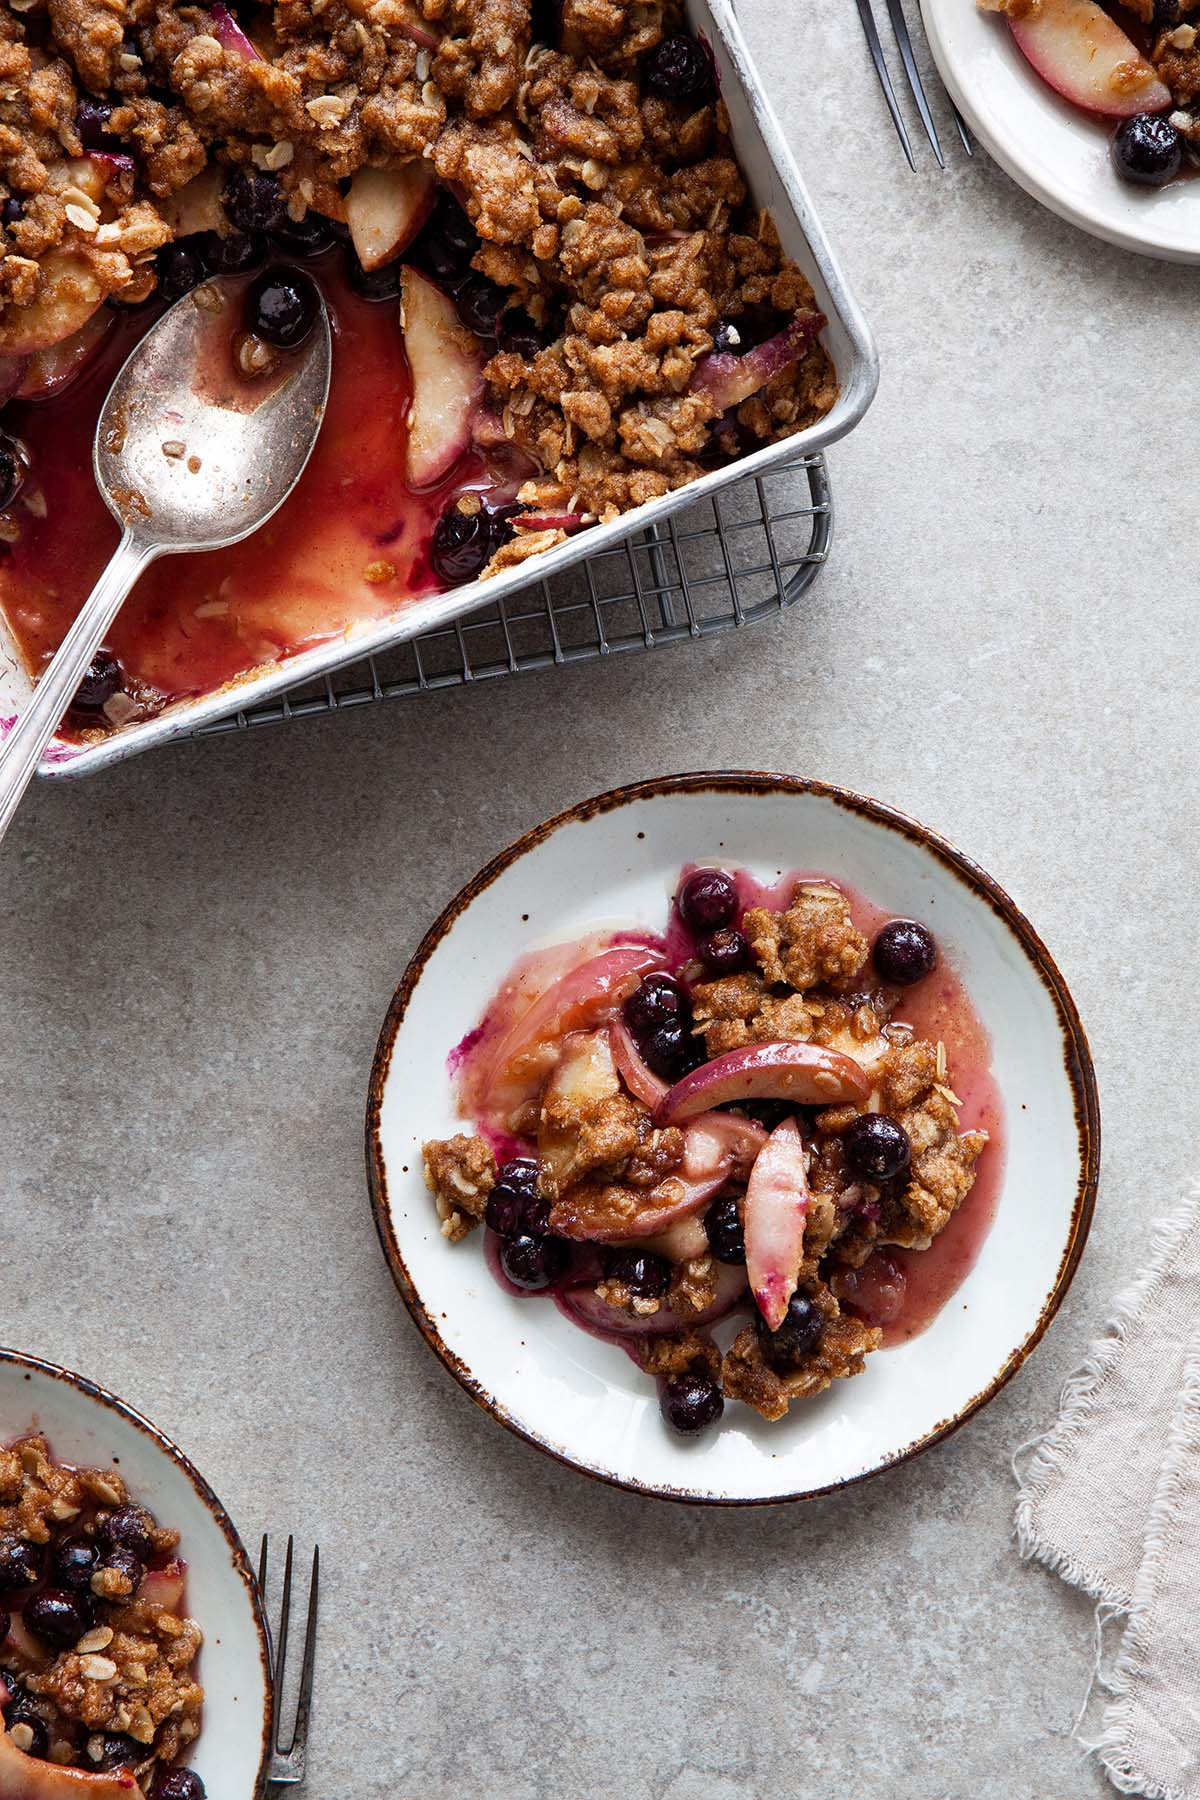 Vegan gluten-free nectarine blueberry crisp on a plate.